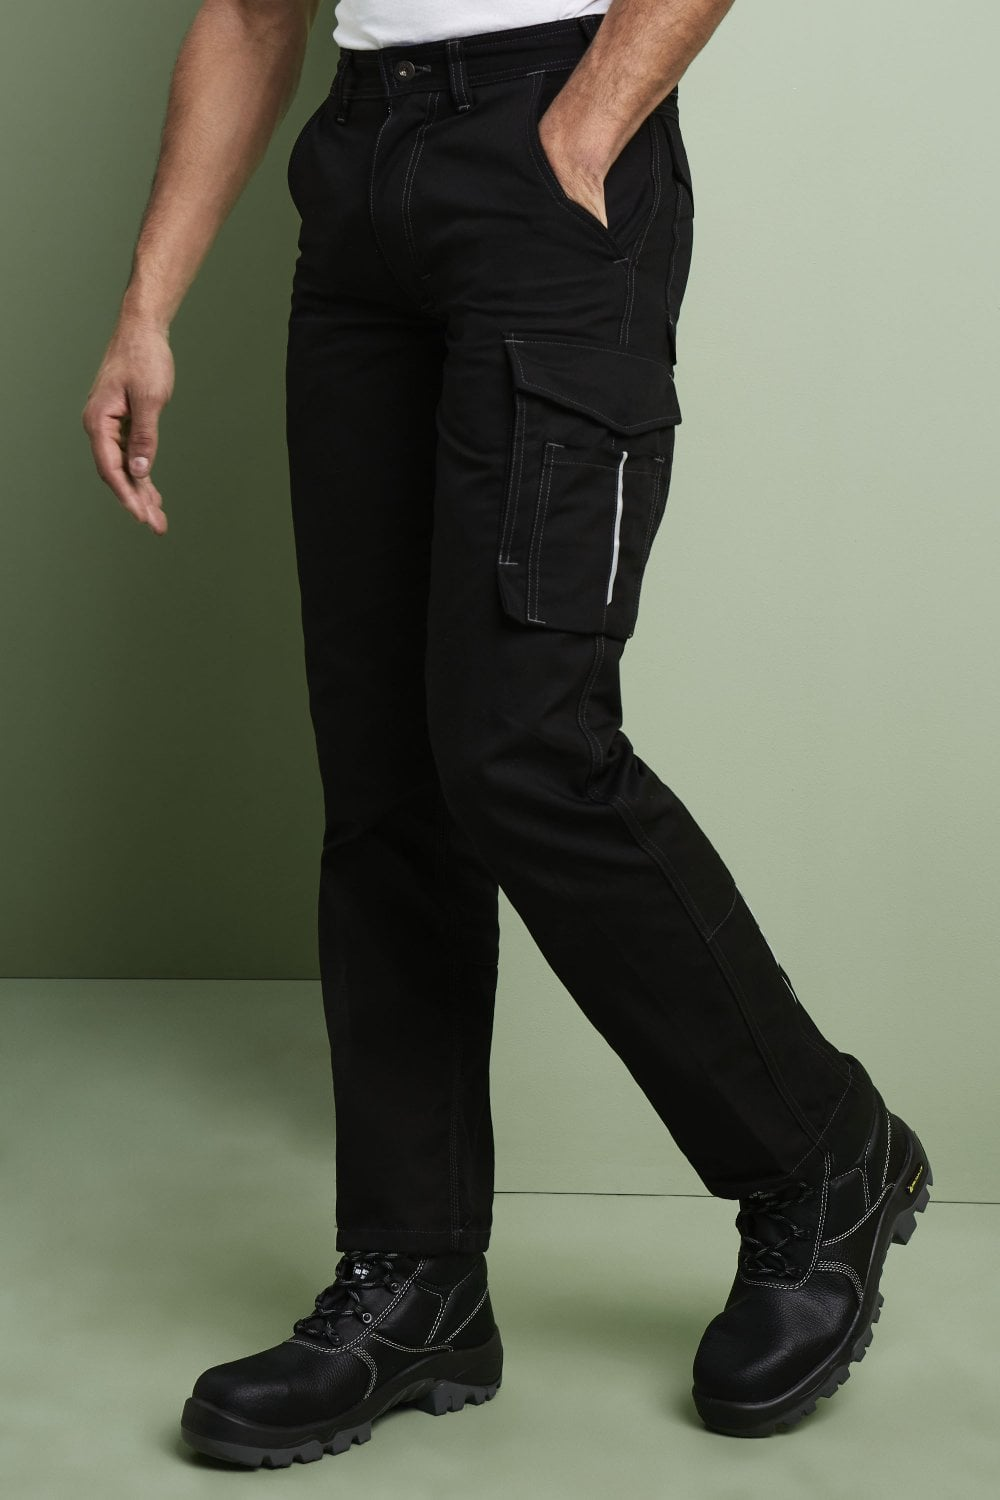 d7a71547a1fd34 Combat Trousers - SHOP BY PROFESSION from Simon Jersey UK